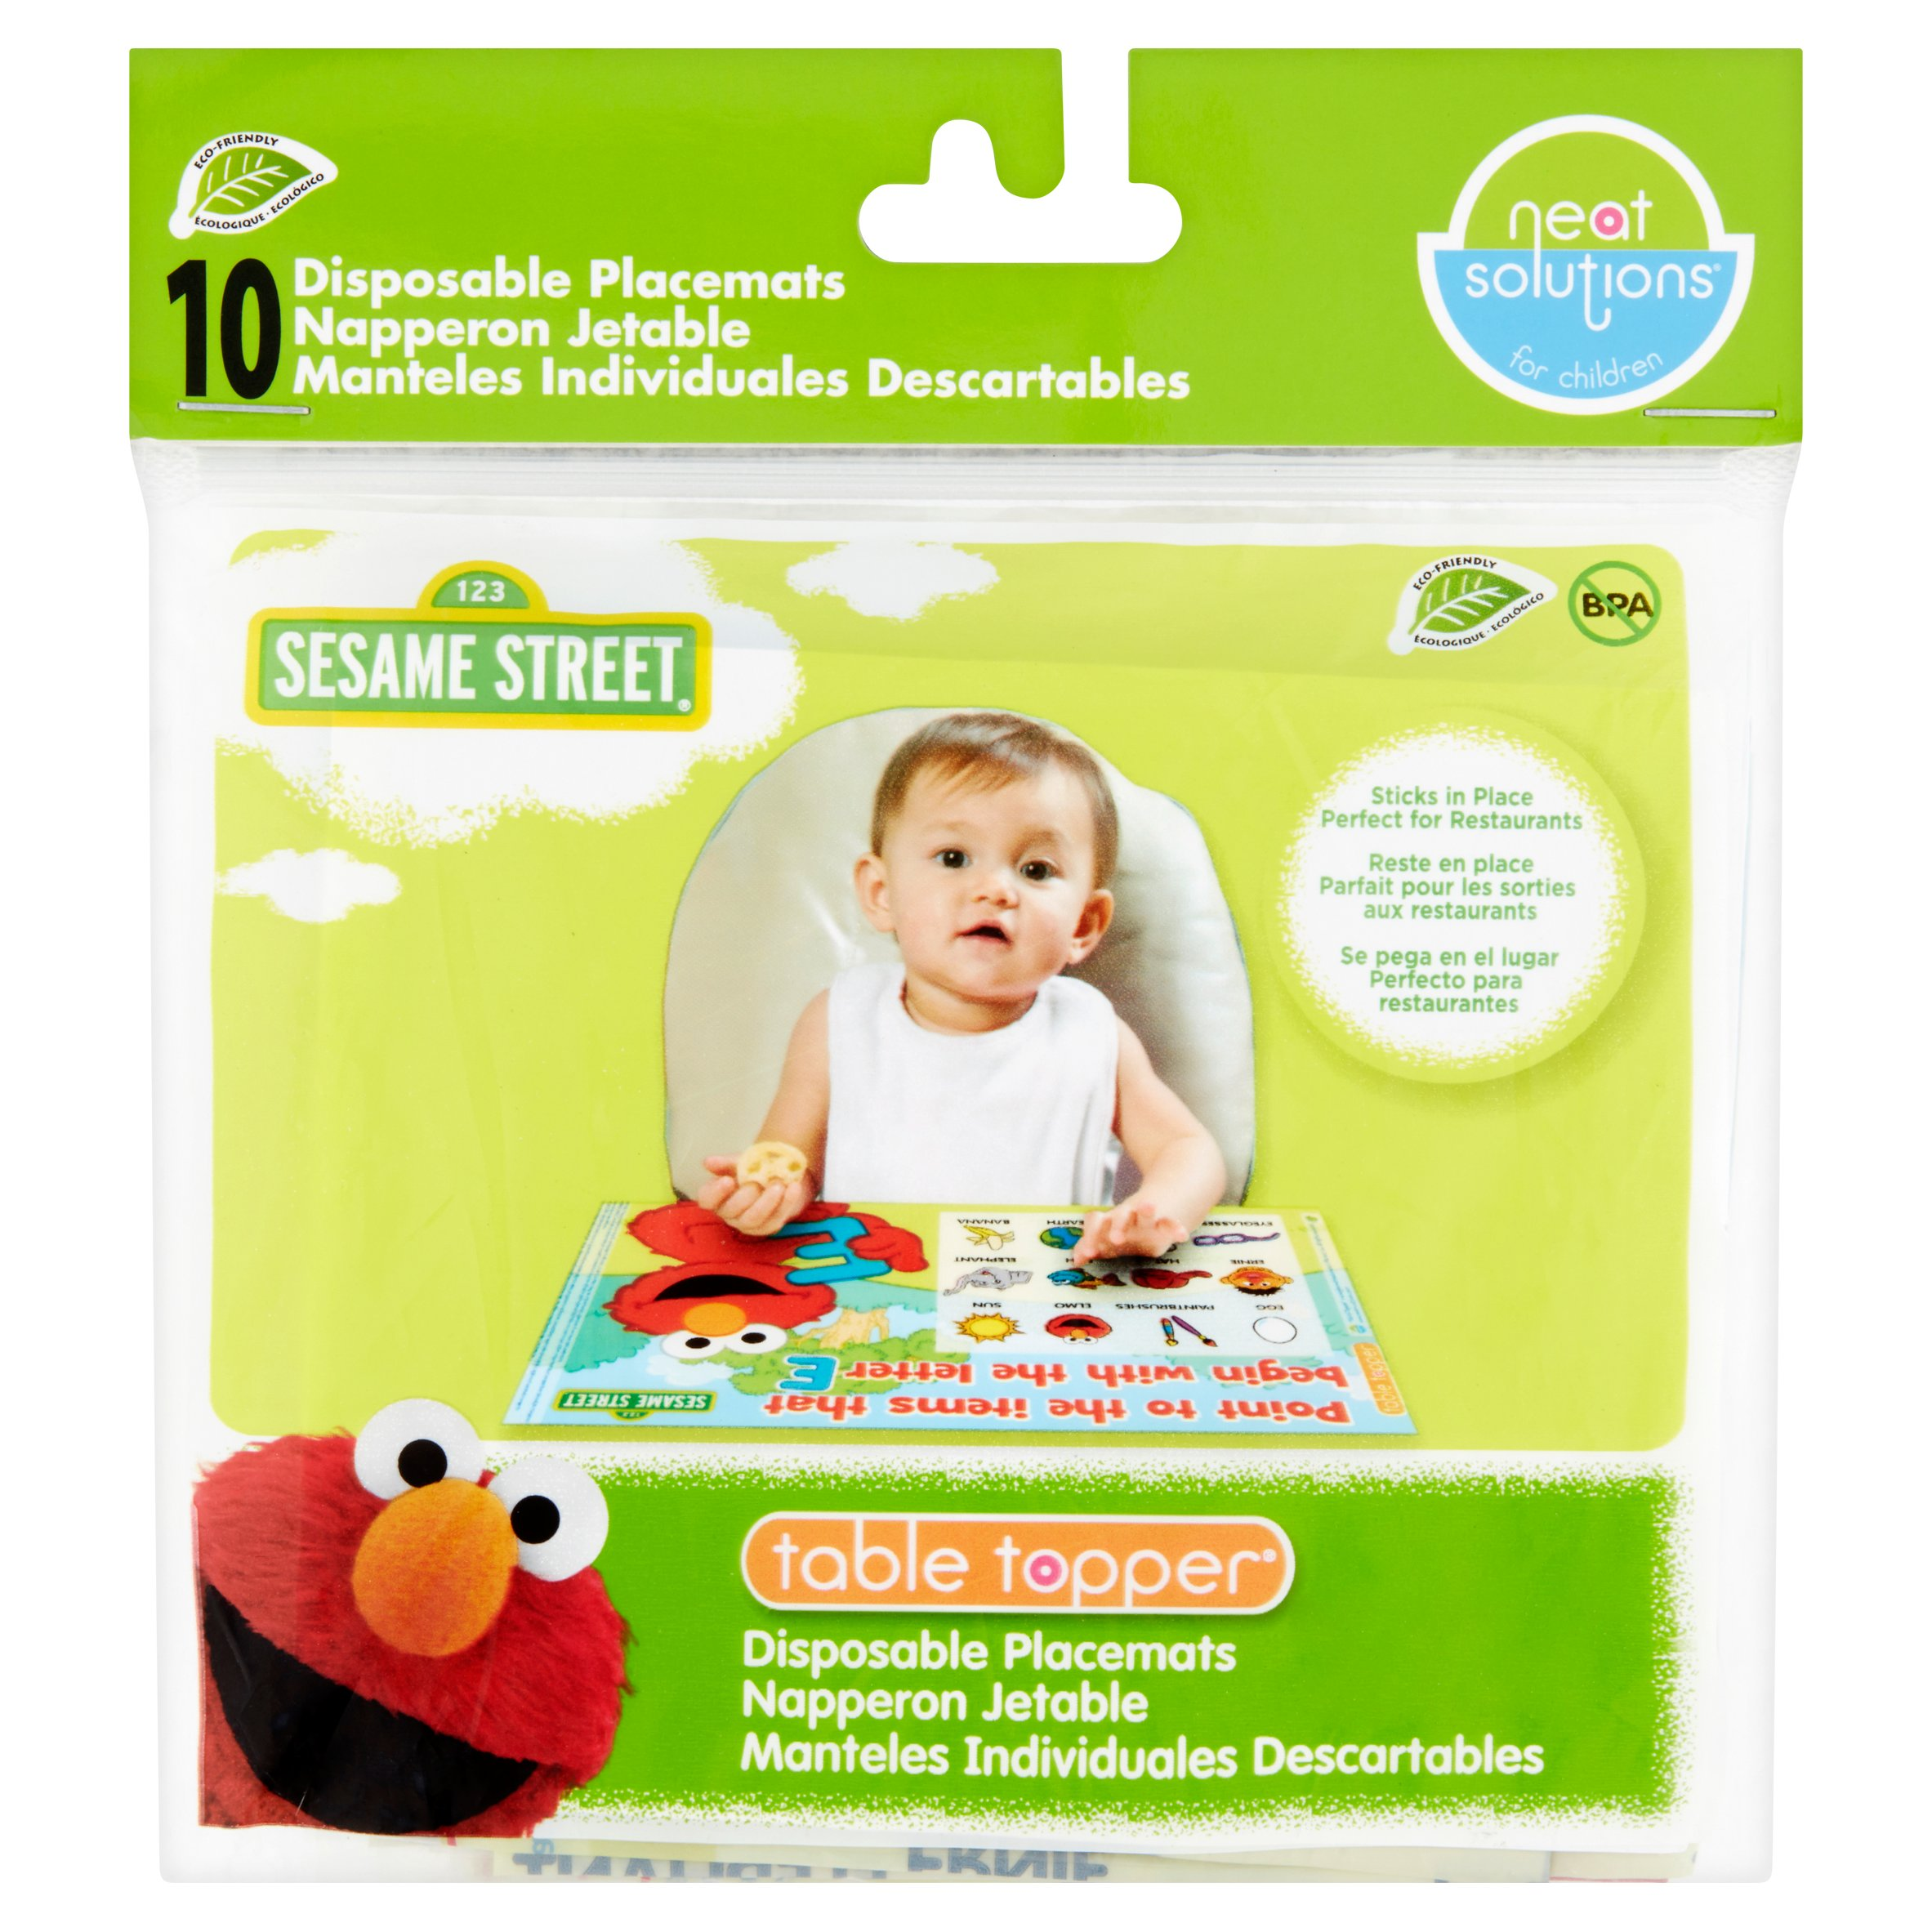 Neat Solutions for Children Sesame Street Table Topper Disposable Placemats, 10 count